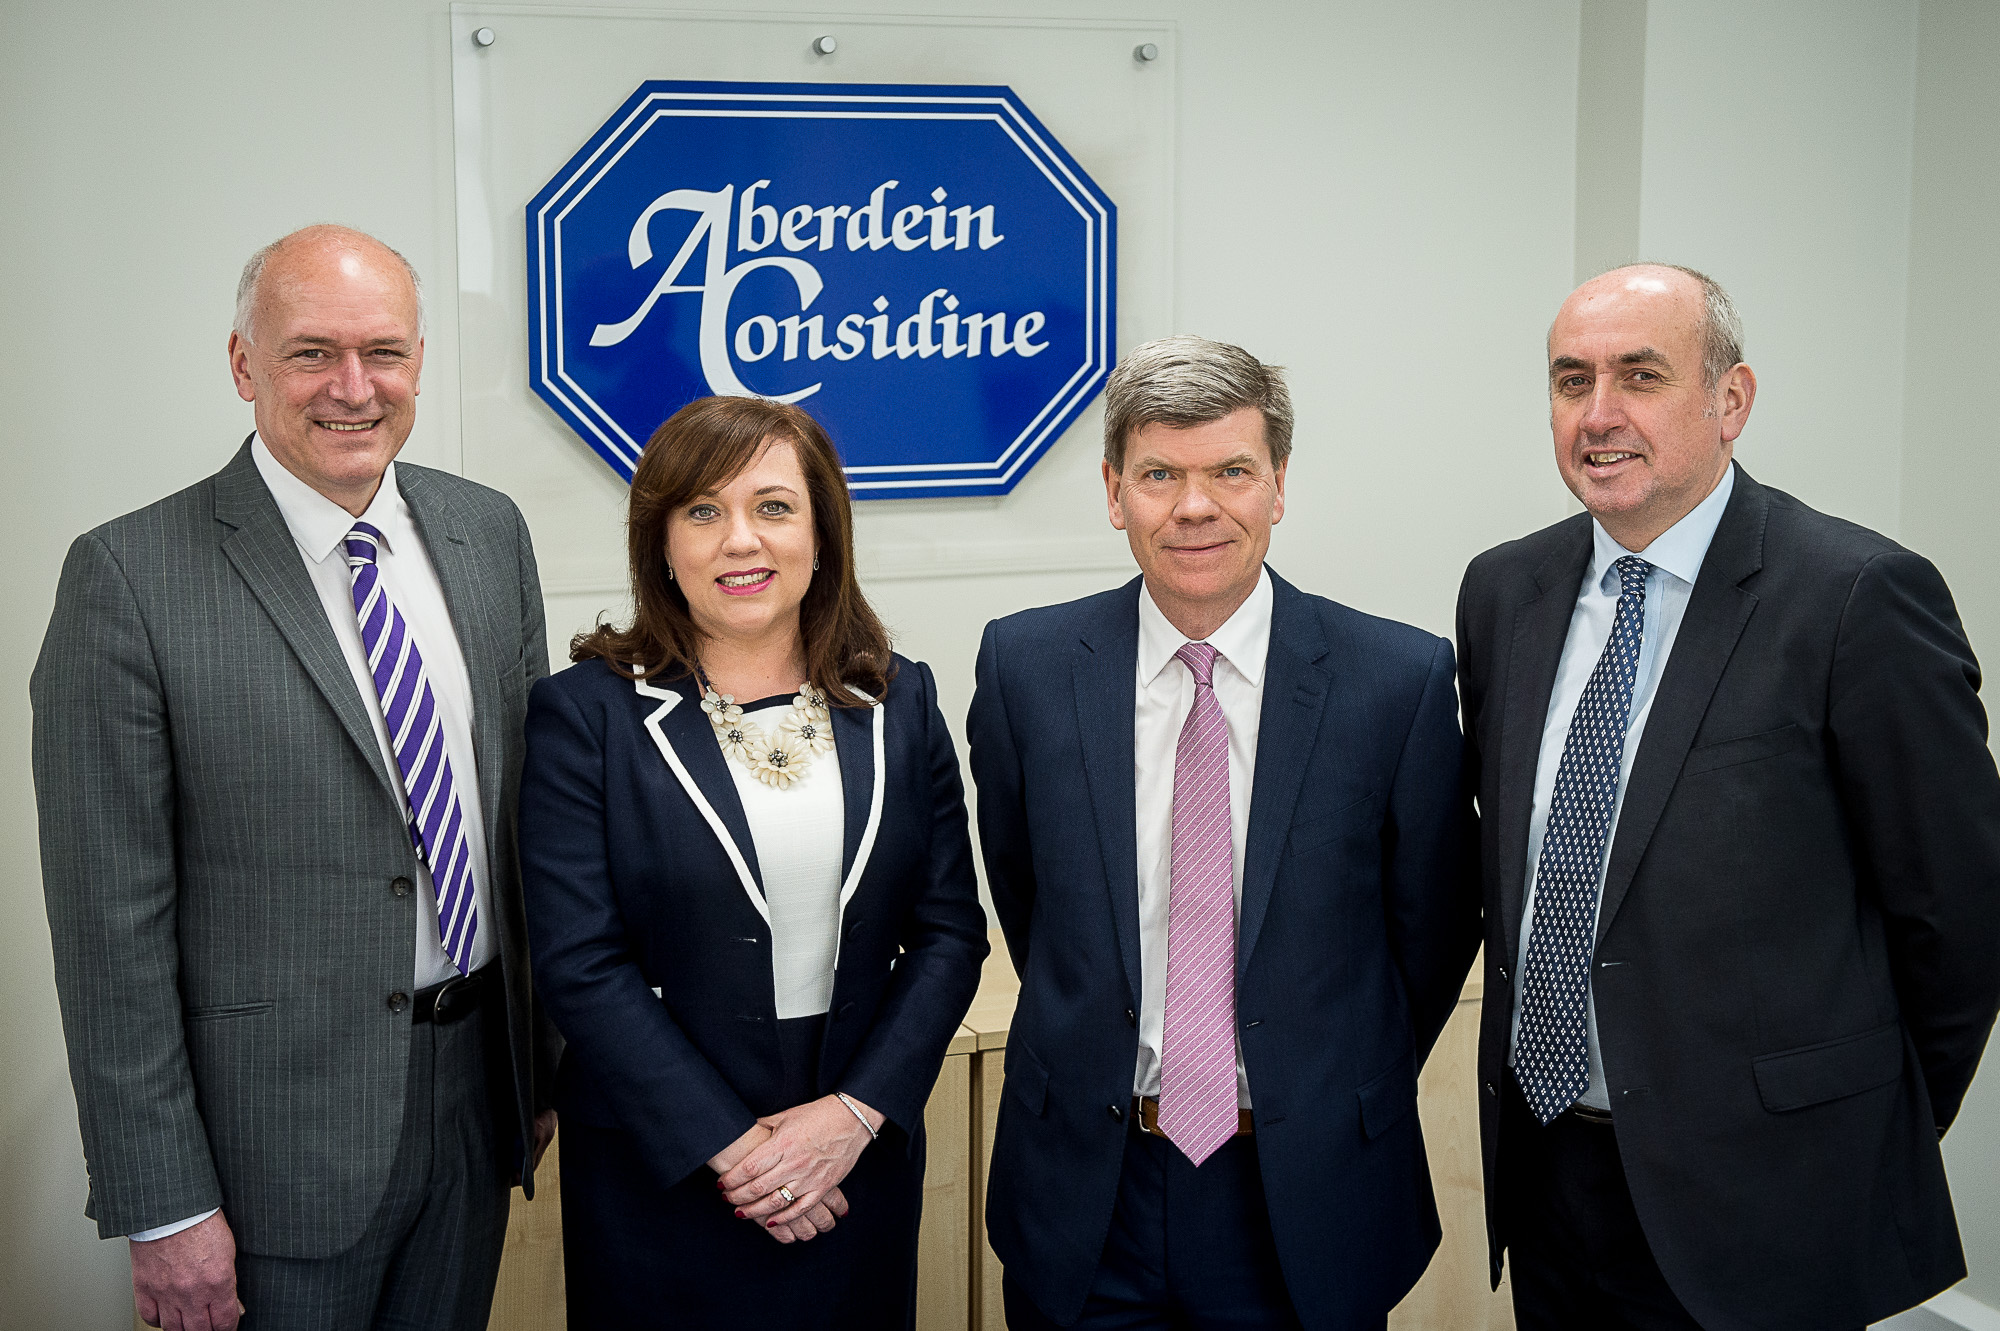 Aberdein Considine expands with merger in Glasgow